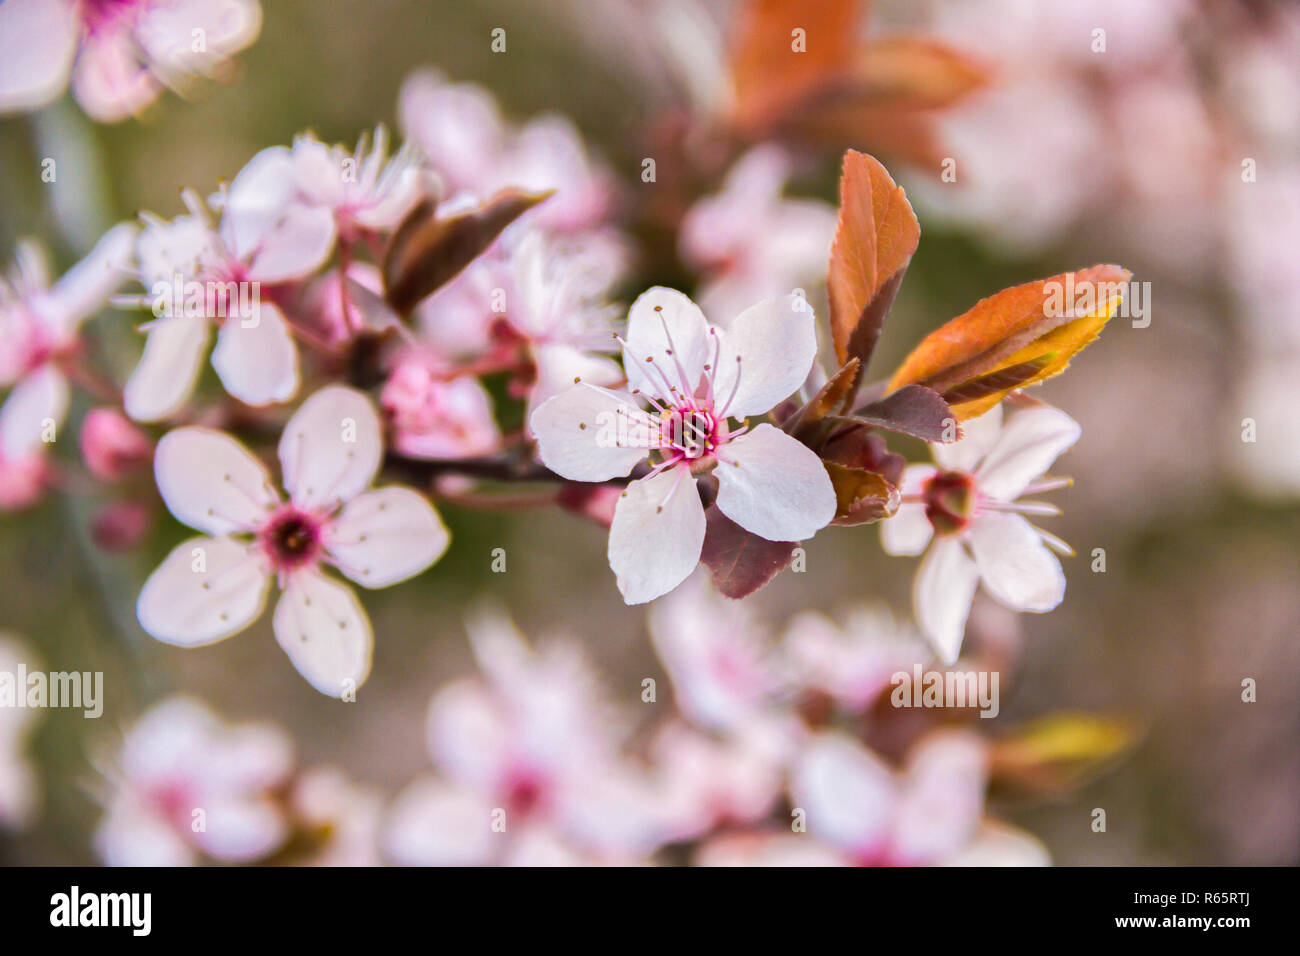 Spring Cherry blossoms on a branch pink flowers, on green natural or sky background Stock Photo